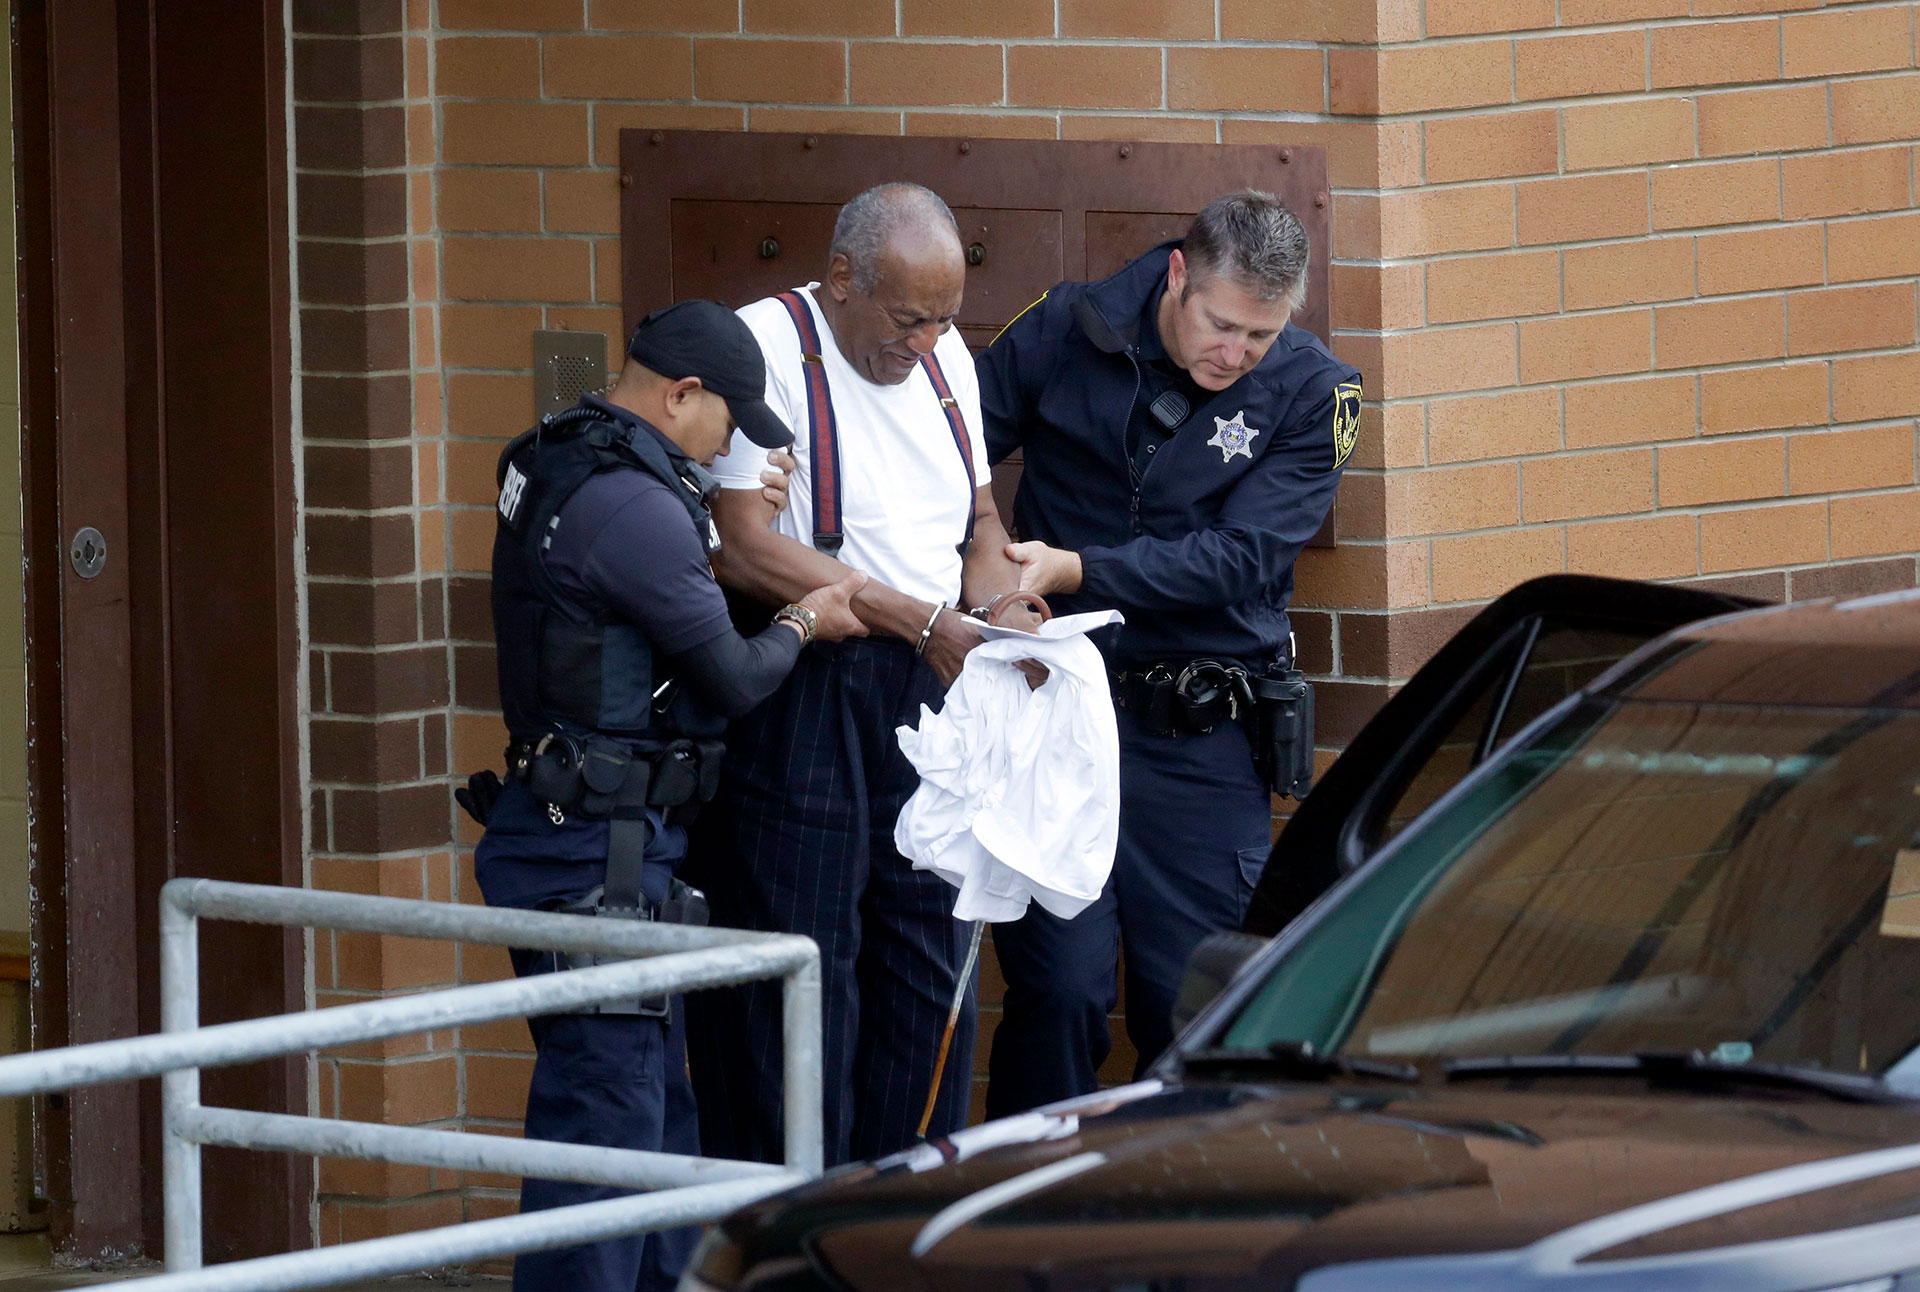 Bill Cosby is led in handcuffs